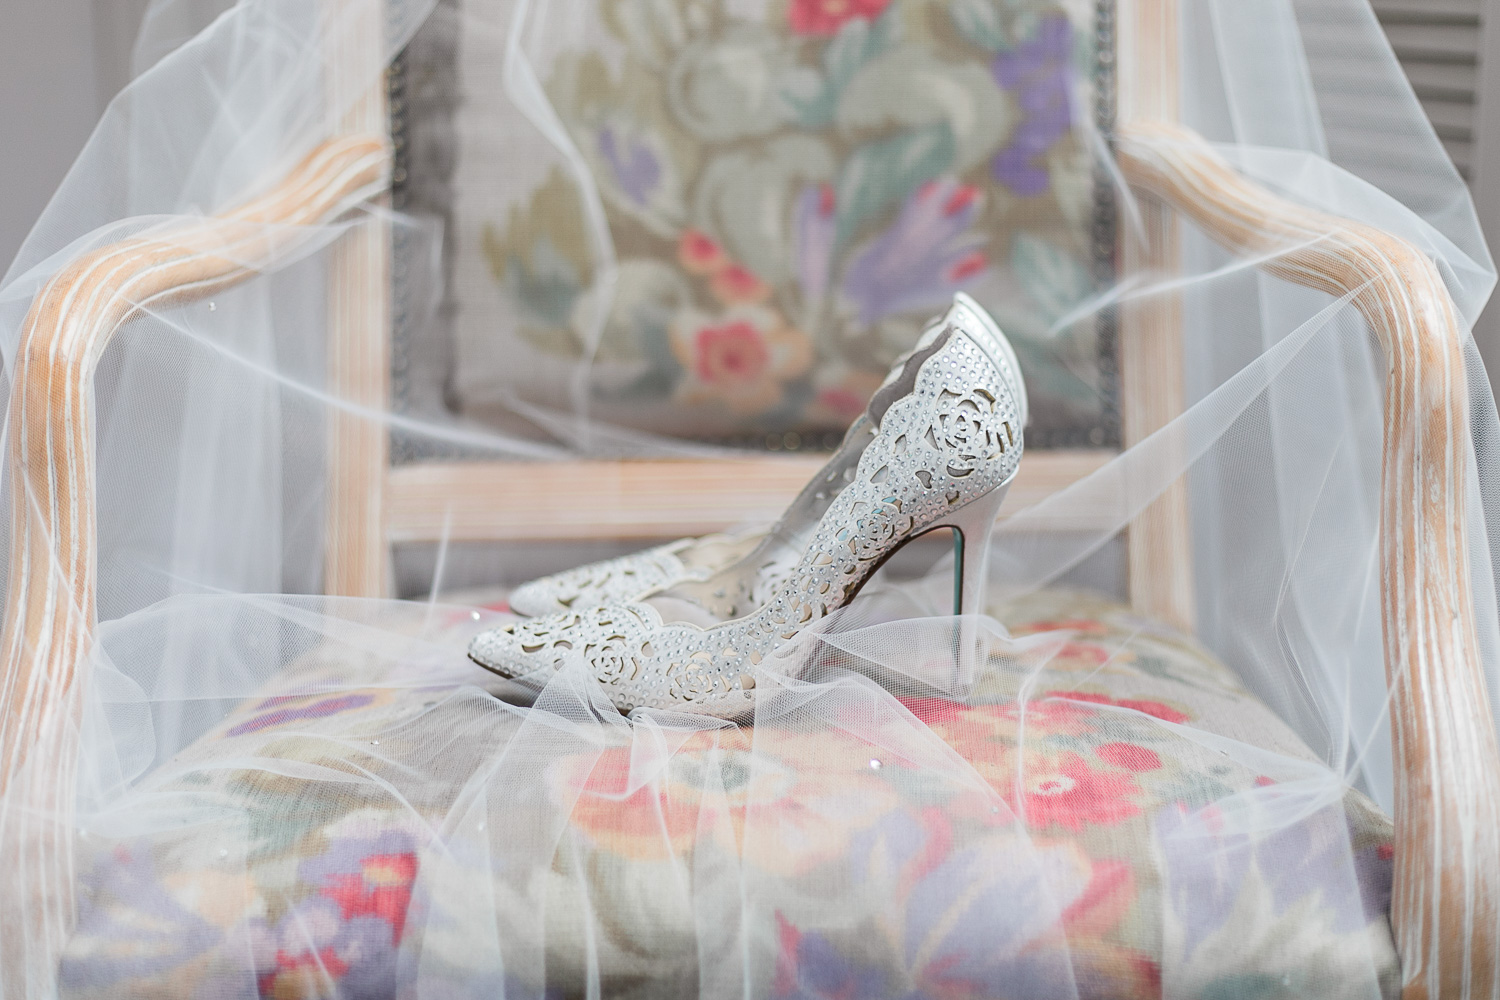 Wedding veil on a chair with wedding shoes